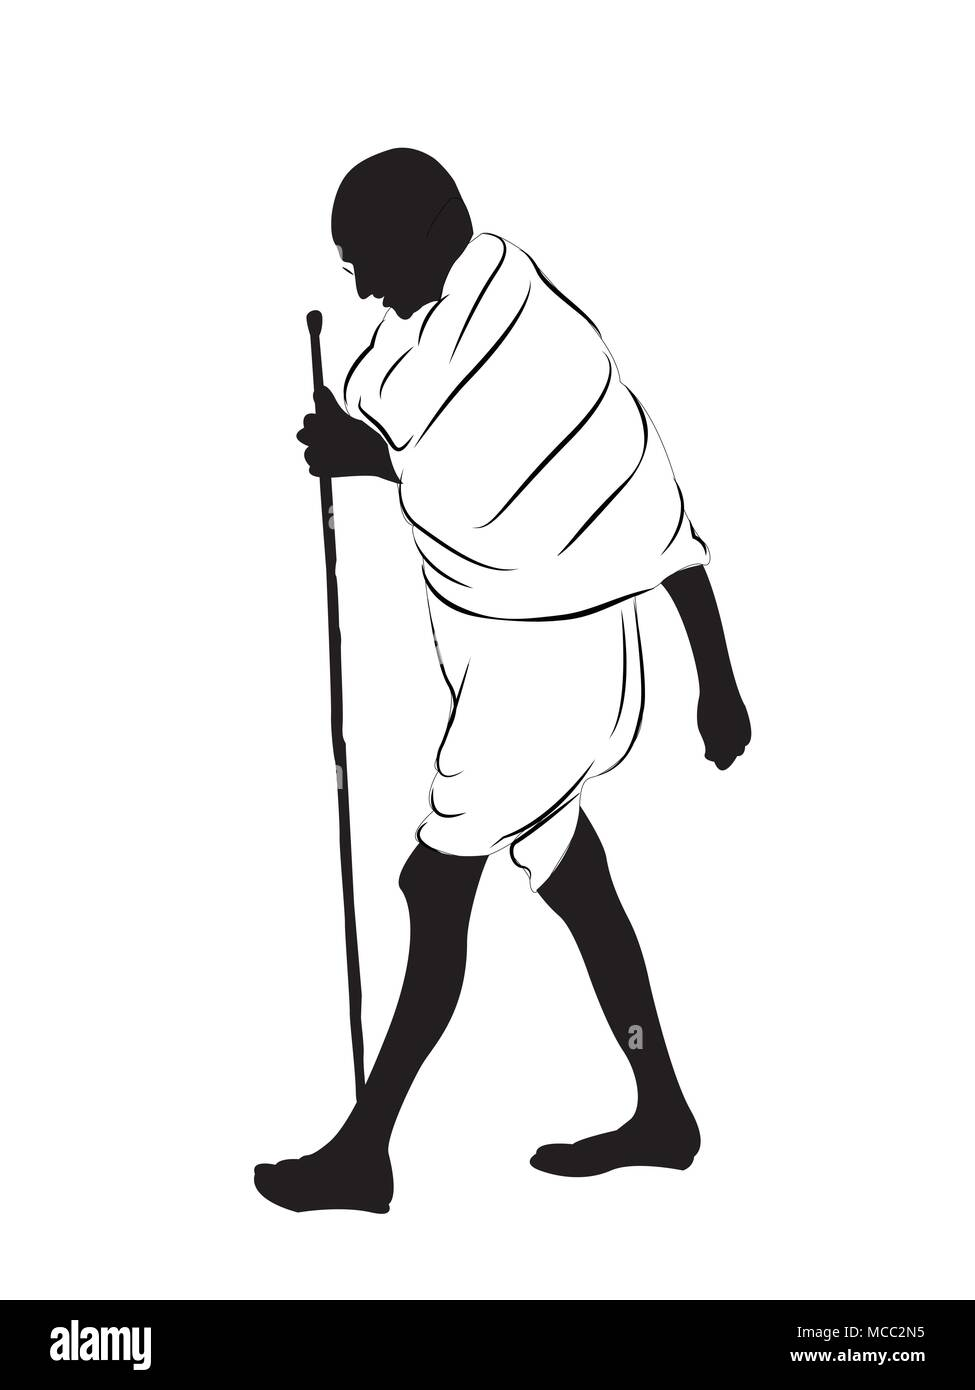 Mahatma Gandhi walking.leader of freedom fighters and father of the nation. - Stock Image